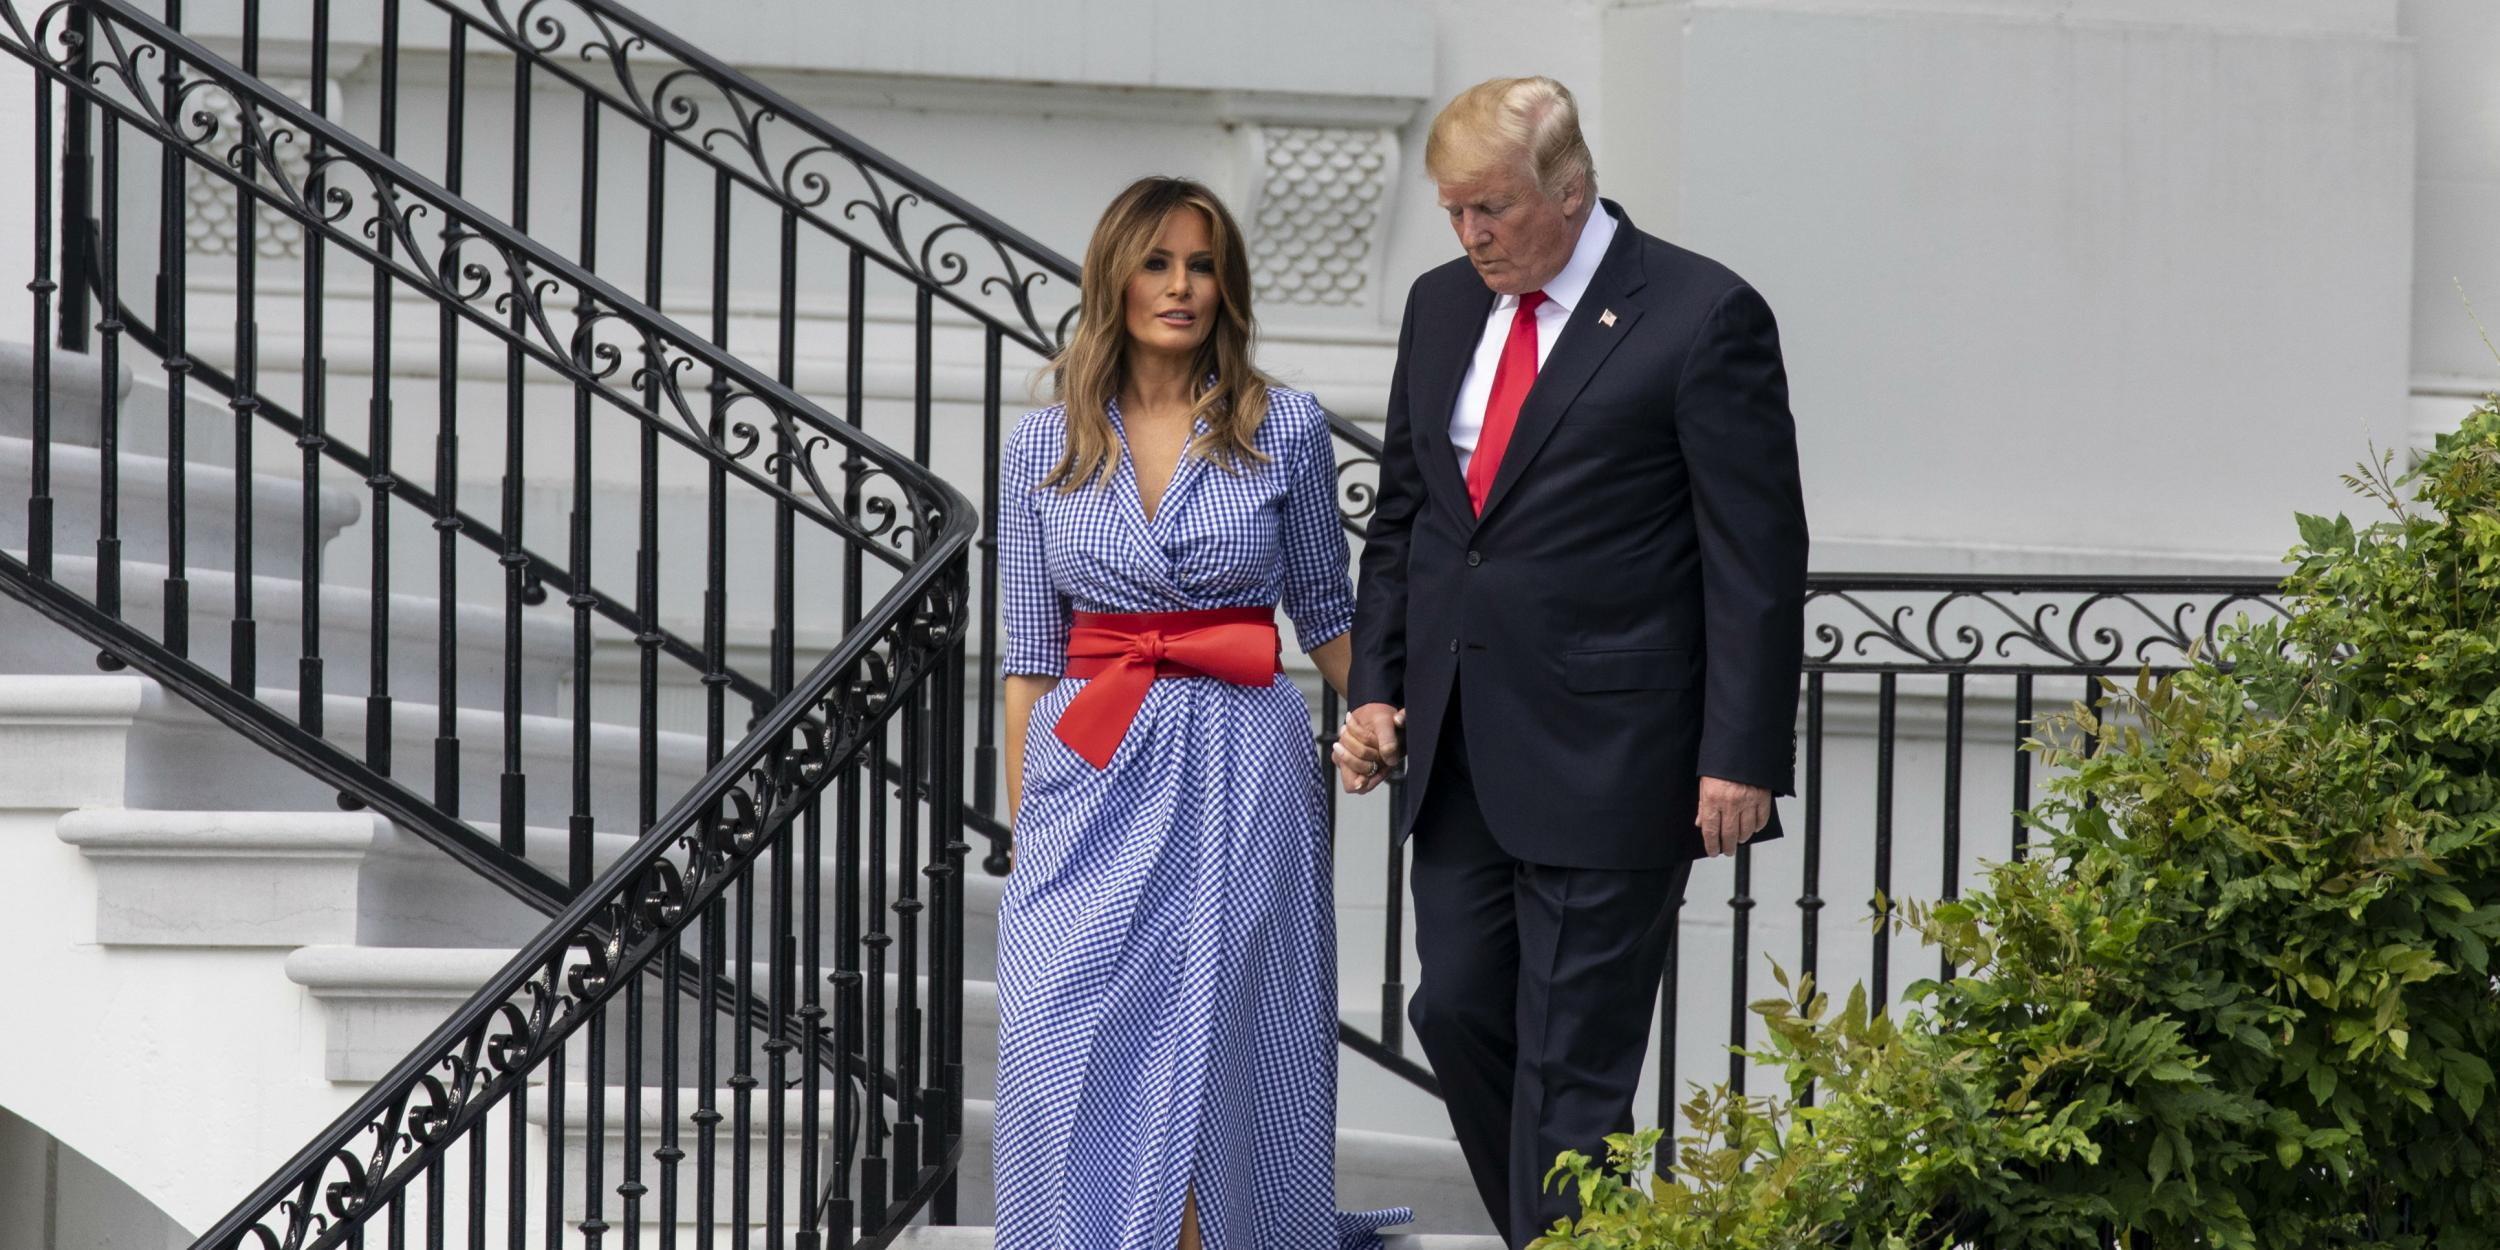 Melania Trump Held Donald Trump S Hand While Celebrating 4 July In Rare Display Of Affection Indy100 Indy100